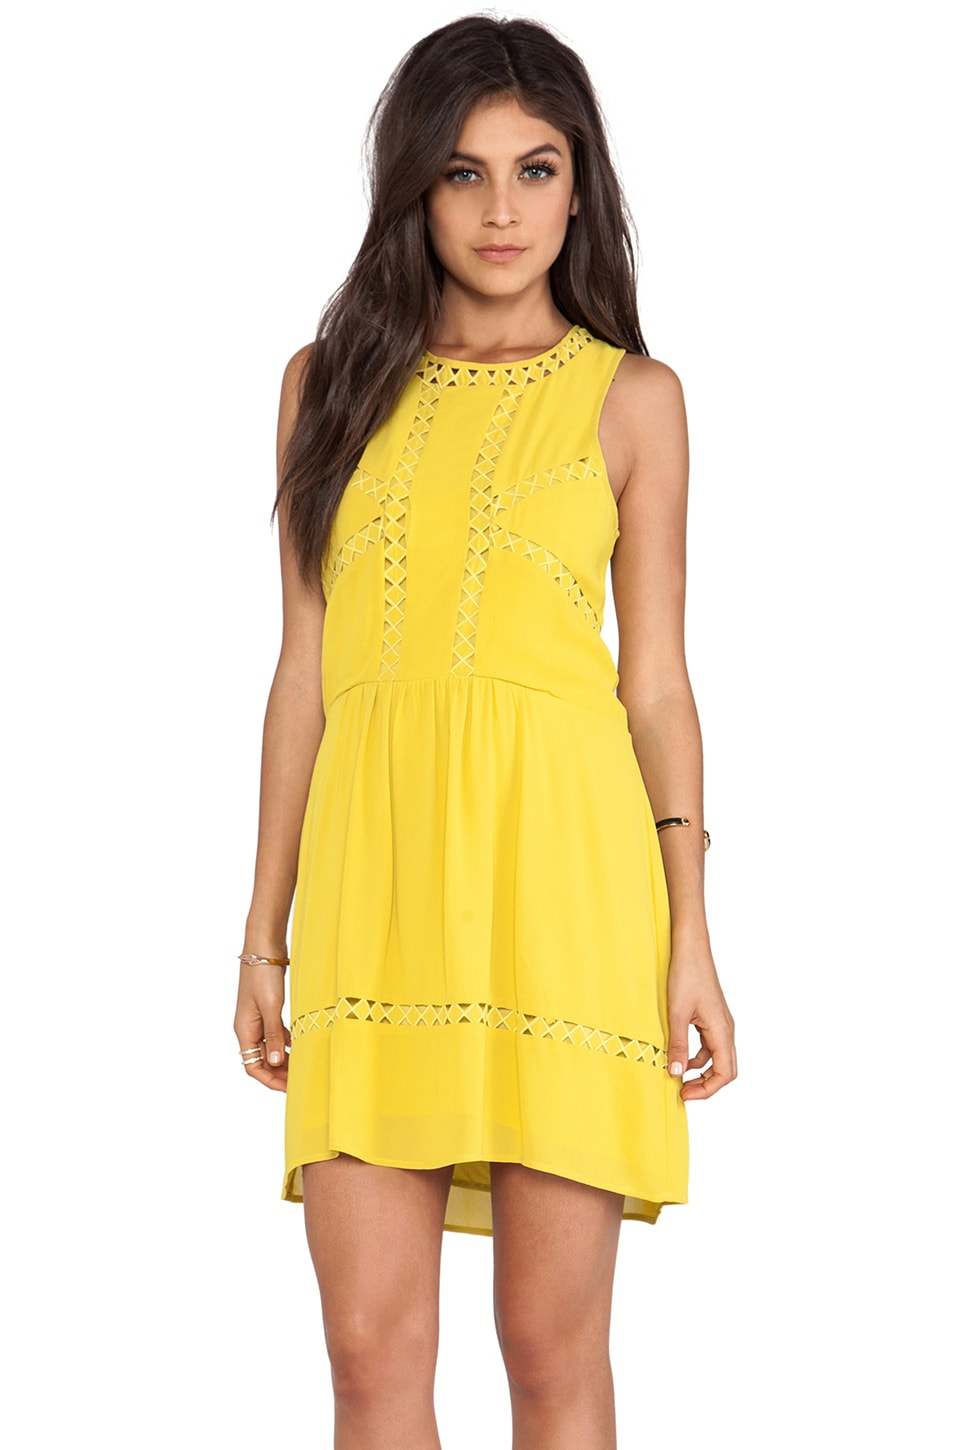 Wish Diamond Mini Dress in Sunshine